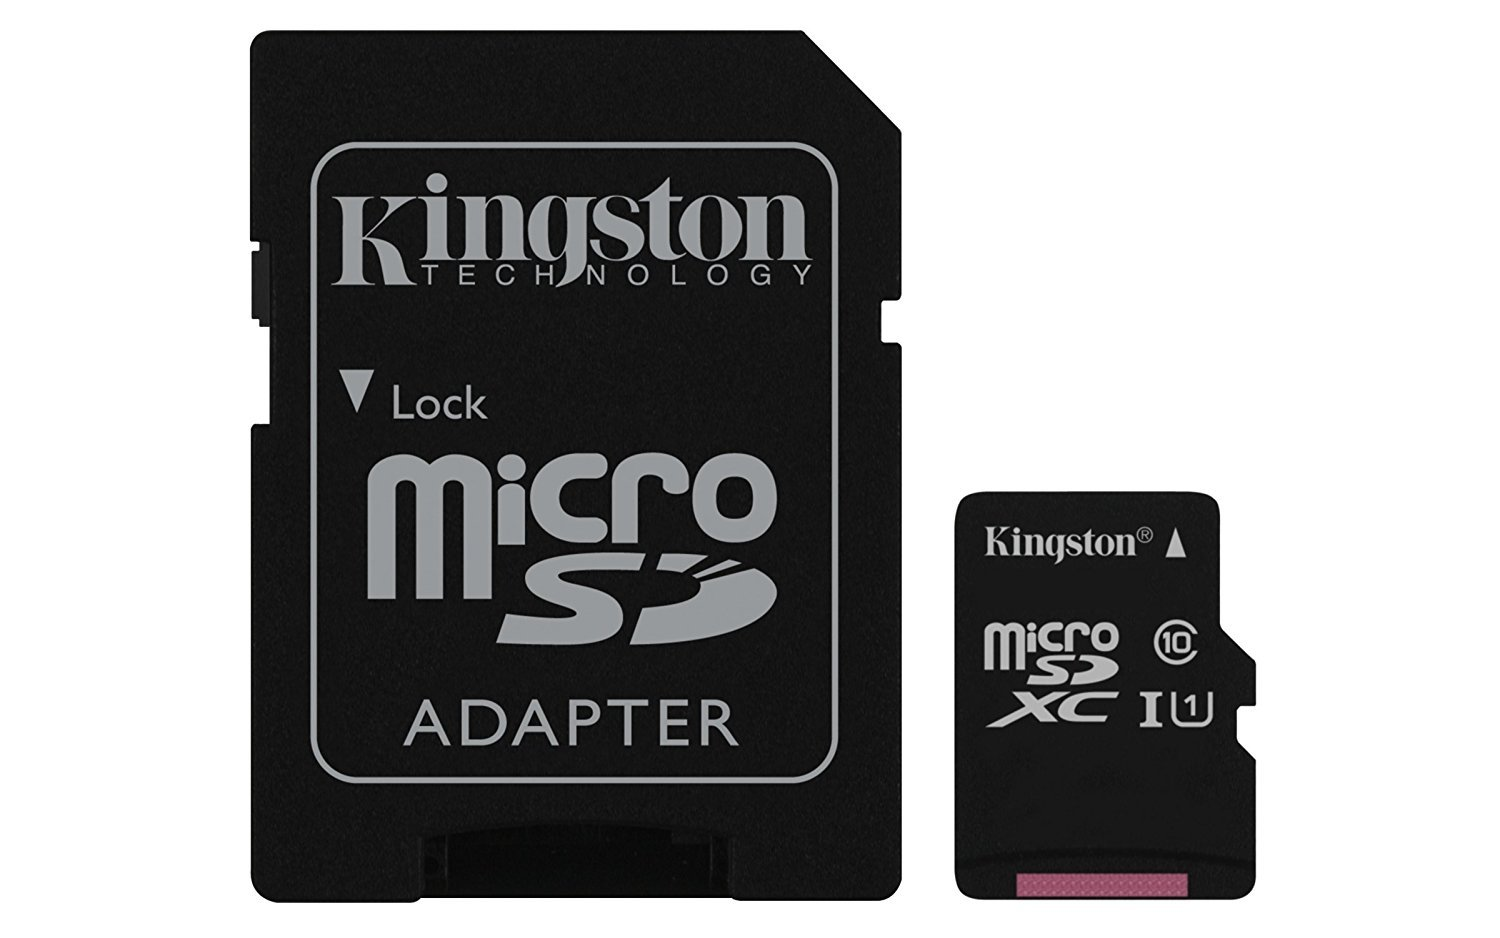 Professional Kingston 256GB Verizon Wireless Ellipsis 10 MicroSDXC Card with custom formatting and Standard SD Adapter! (Class 10, UHS-I) by Custom Kingston for Verizon (Image #2)